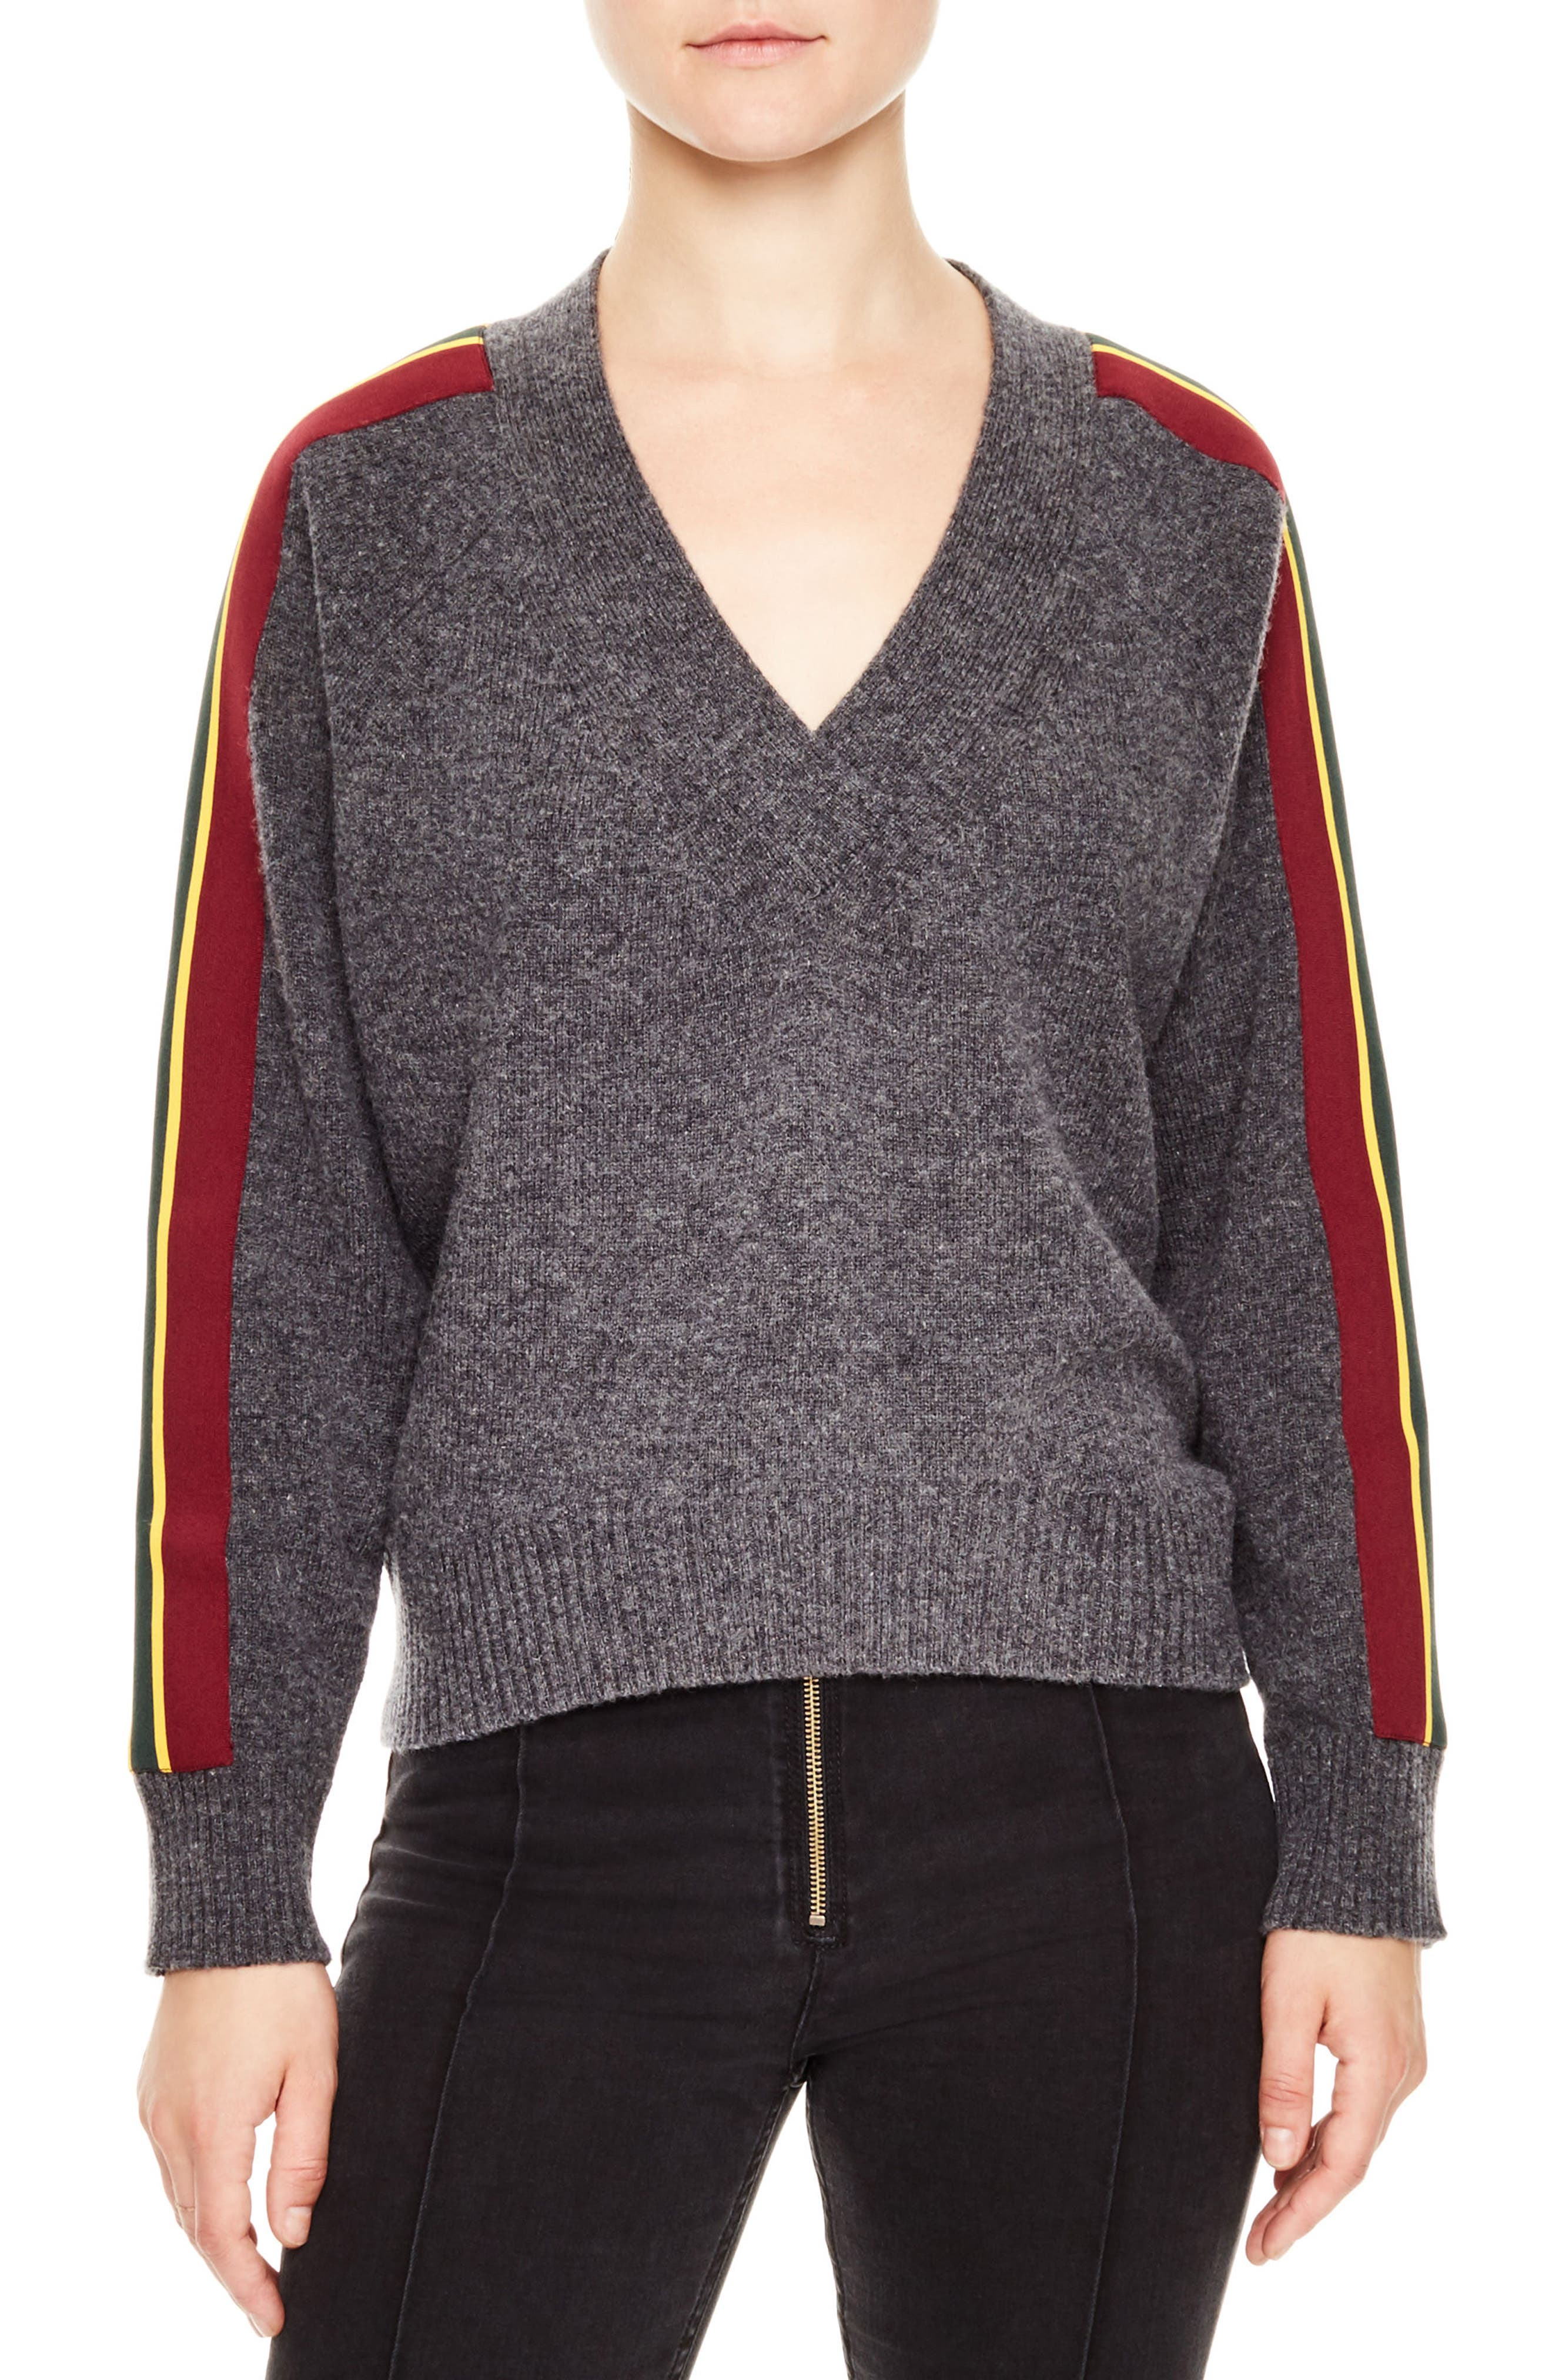 Artic Wool Blend Sweater,                         Main,                         color, 051